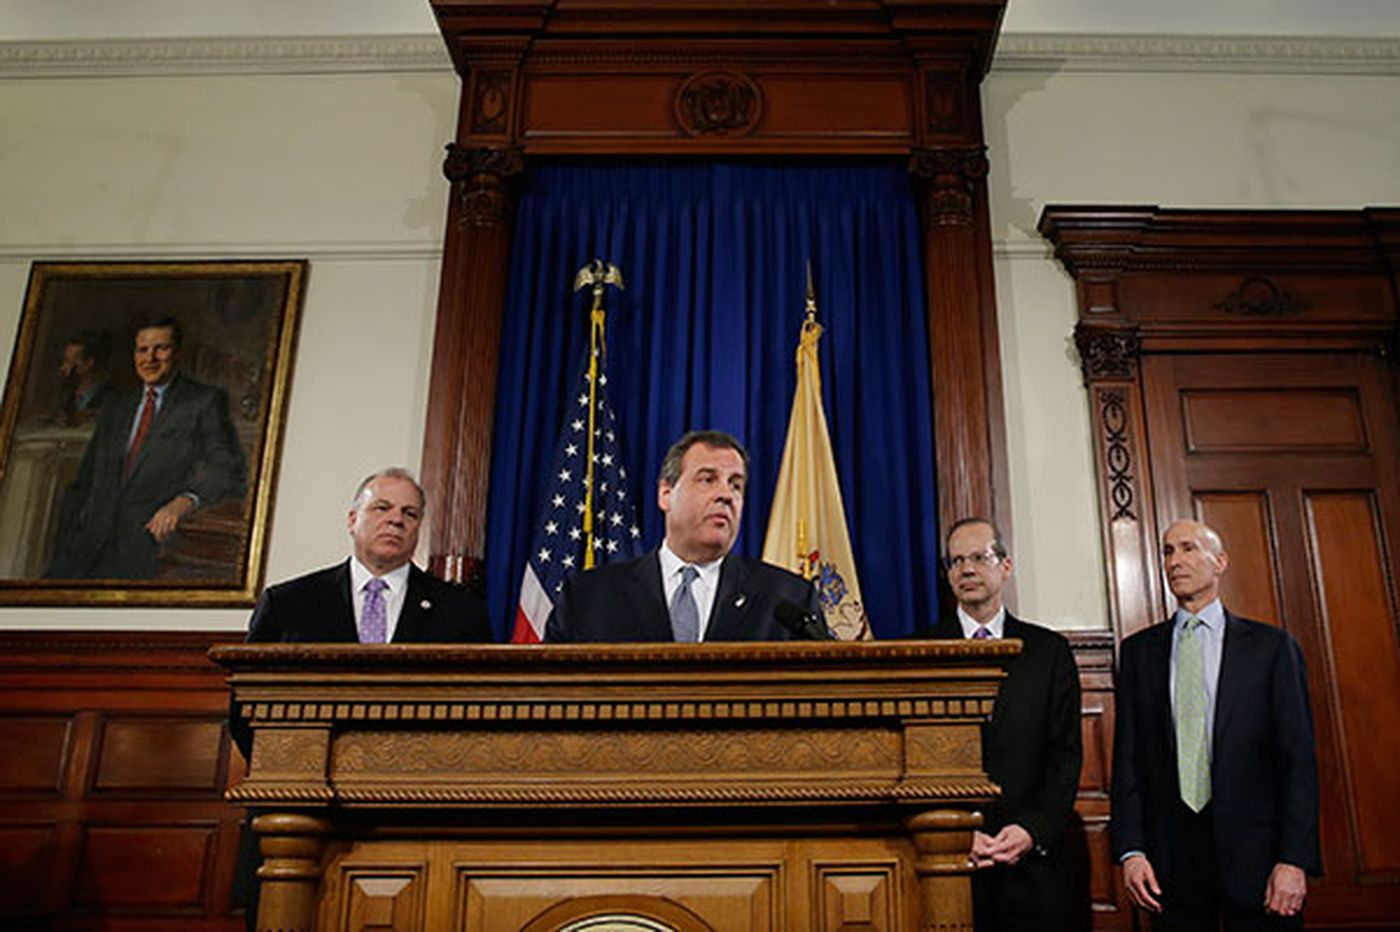 In deal, Christie renominates Chief Justice Rabner and names Lee Solomon to court